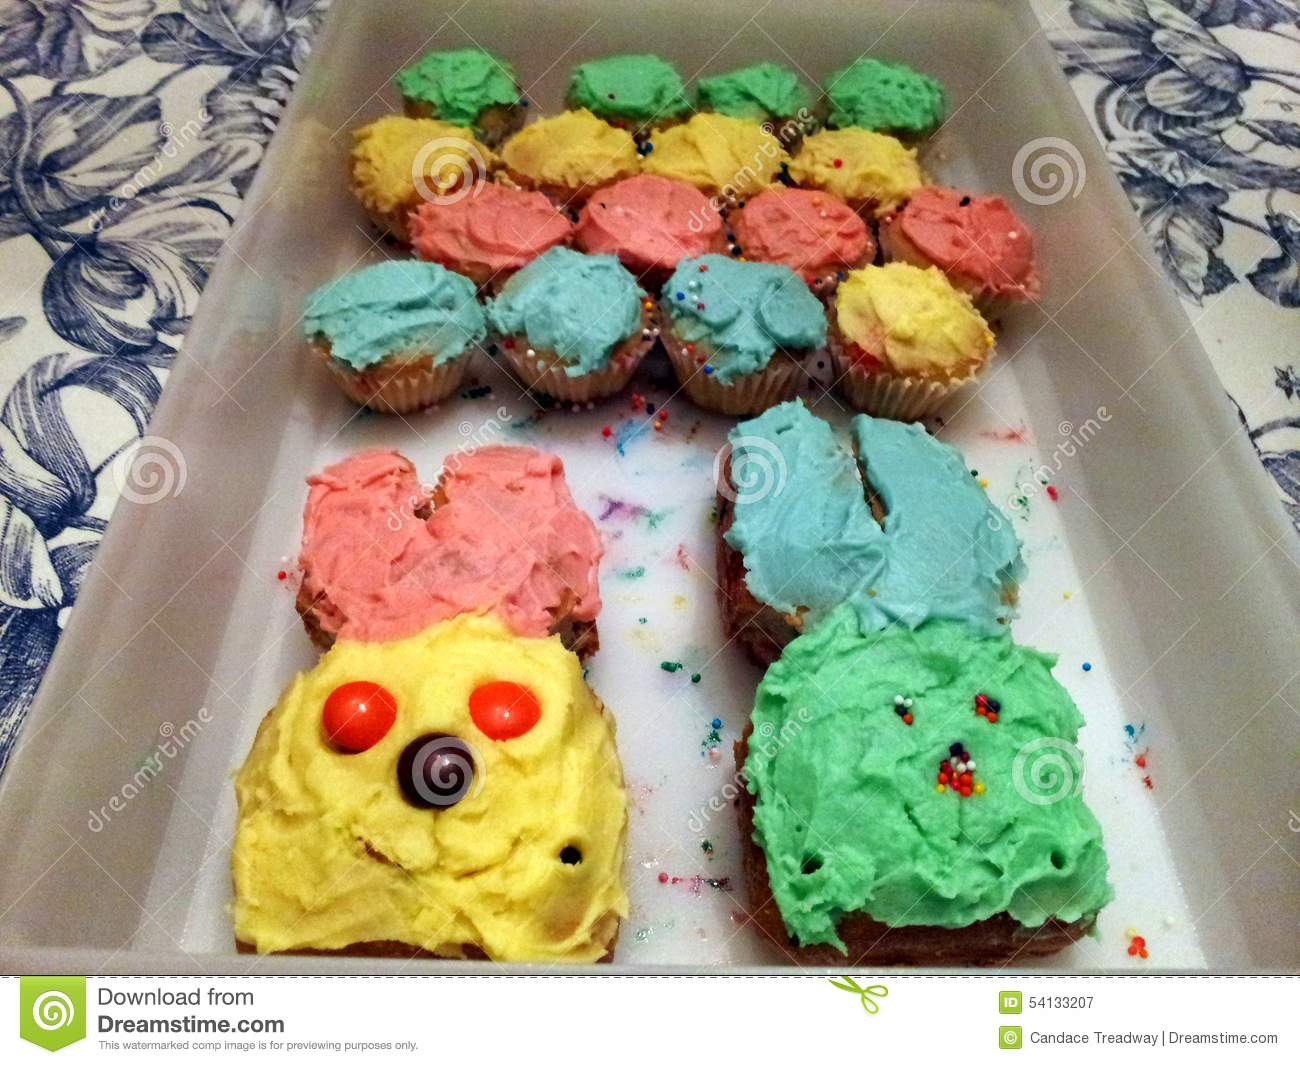 Made Cakes Shaped Like Bunnies And Cupcakes For Easter One Year